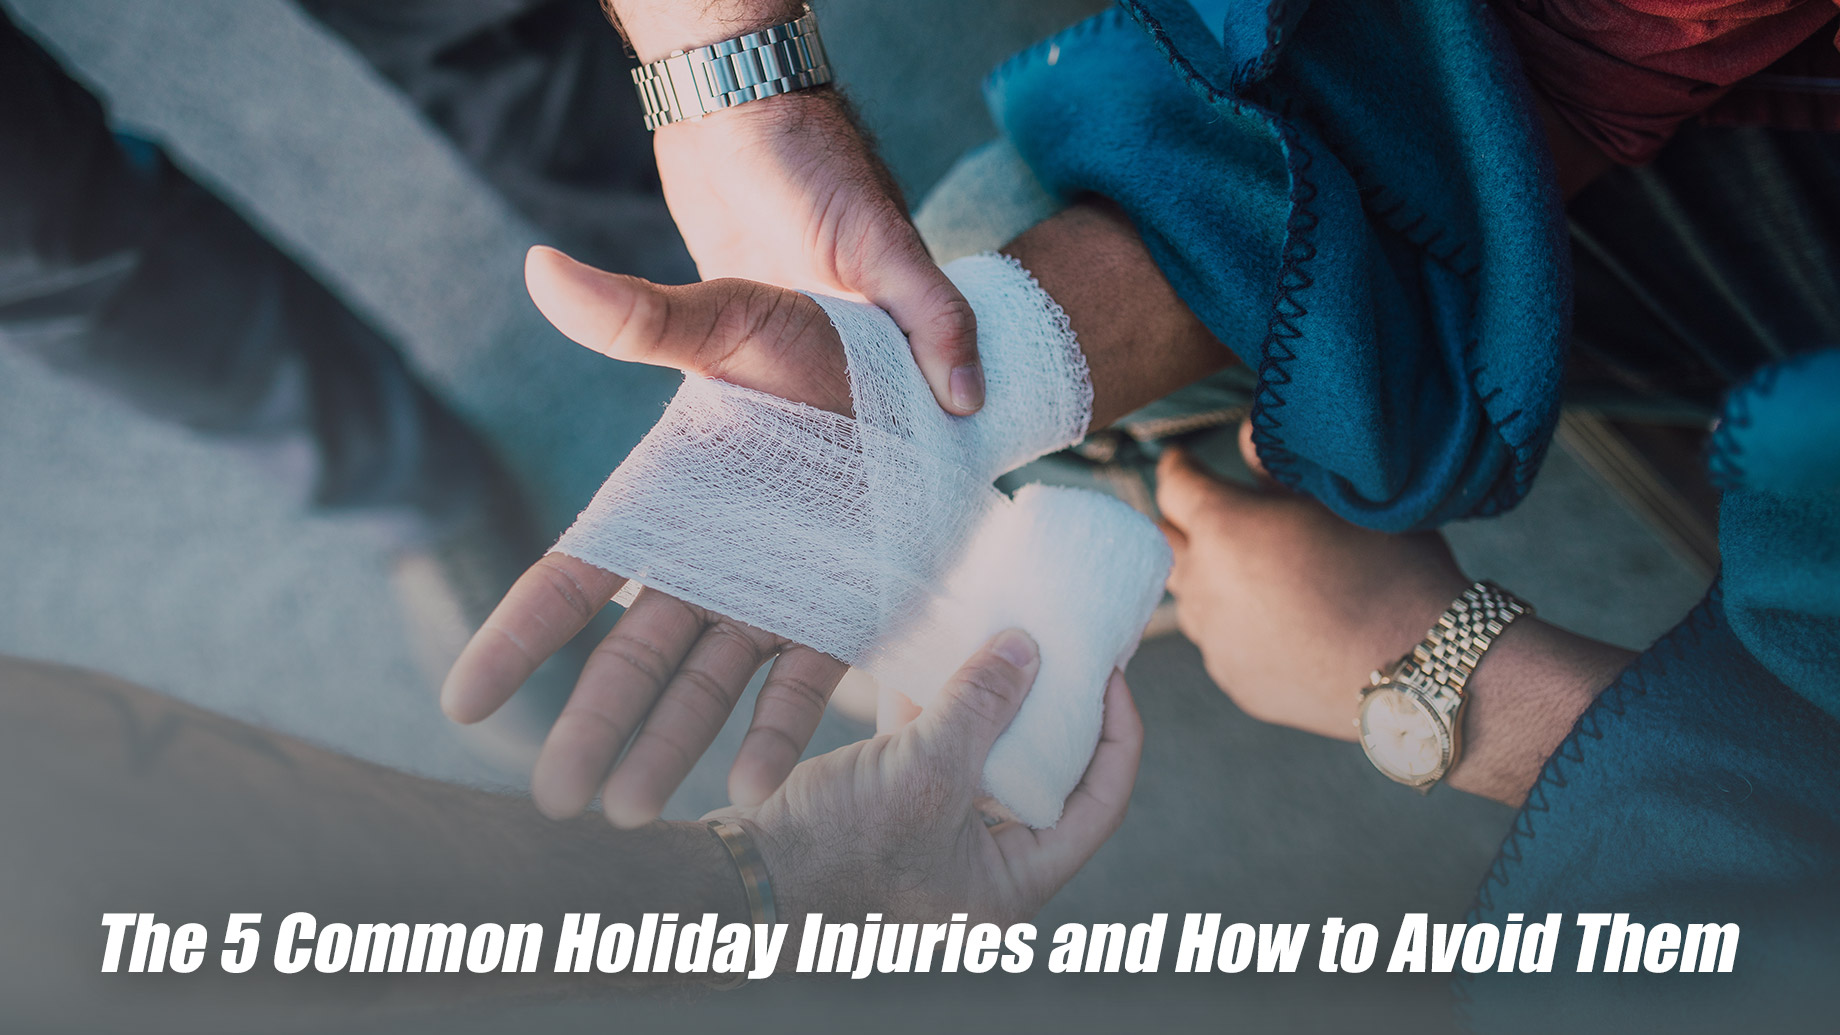 The 5 Common Holiday Injuries and How to Avoid Them